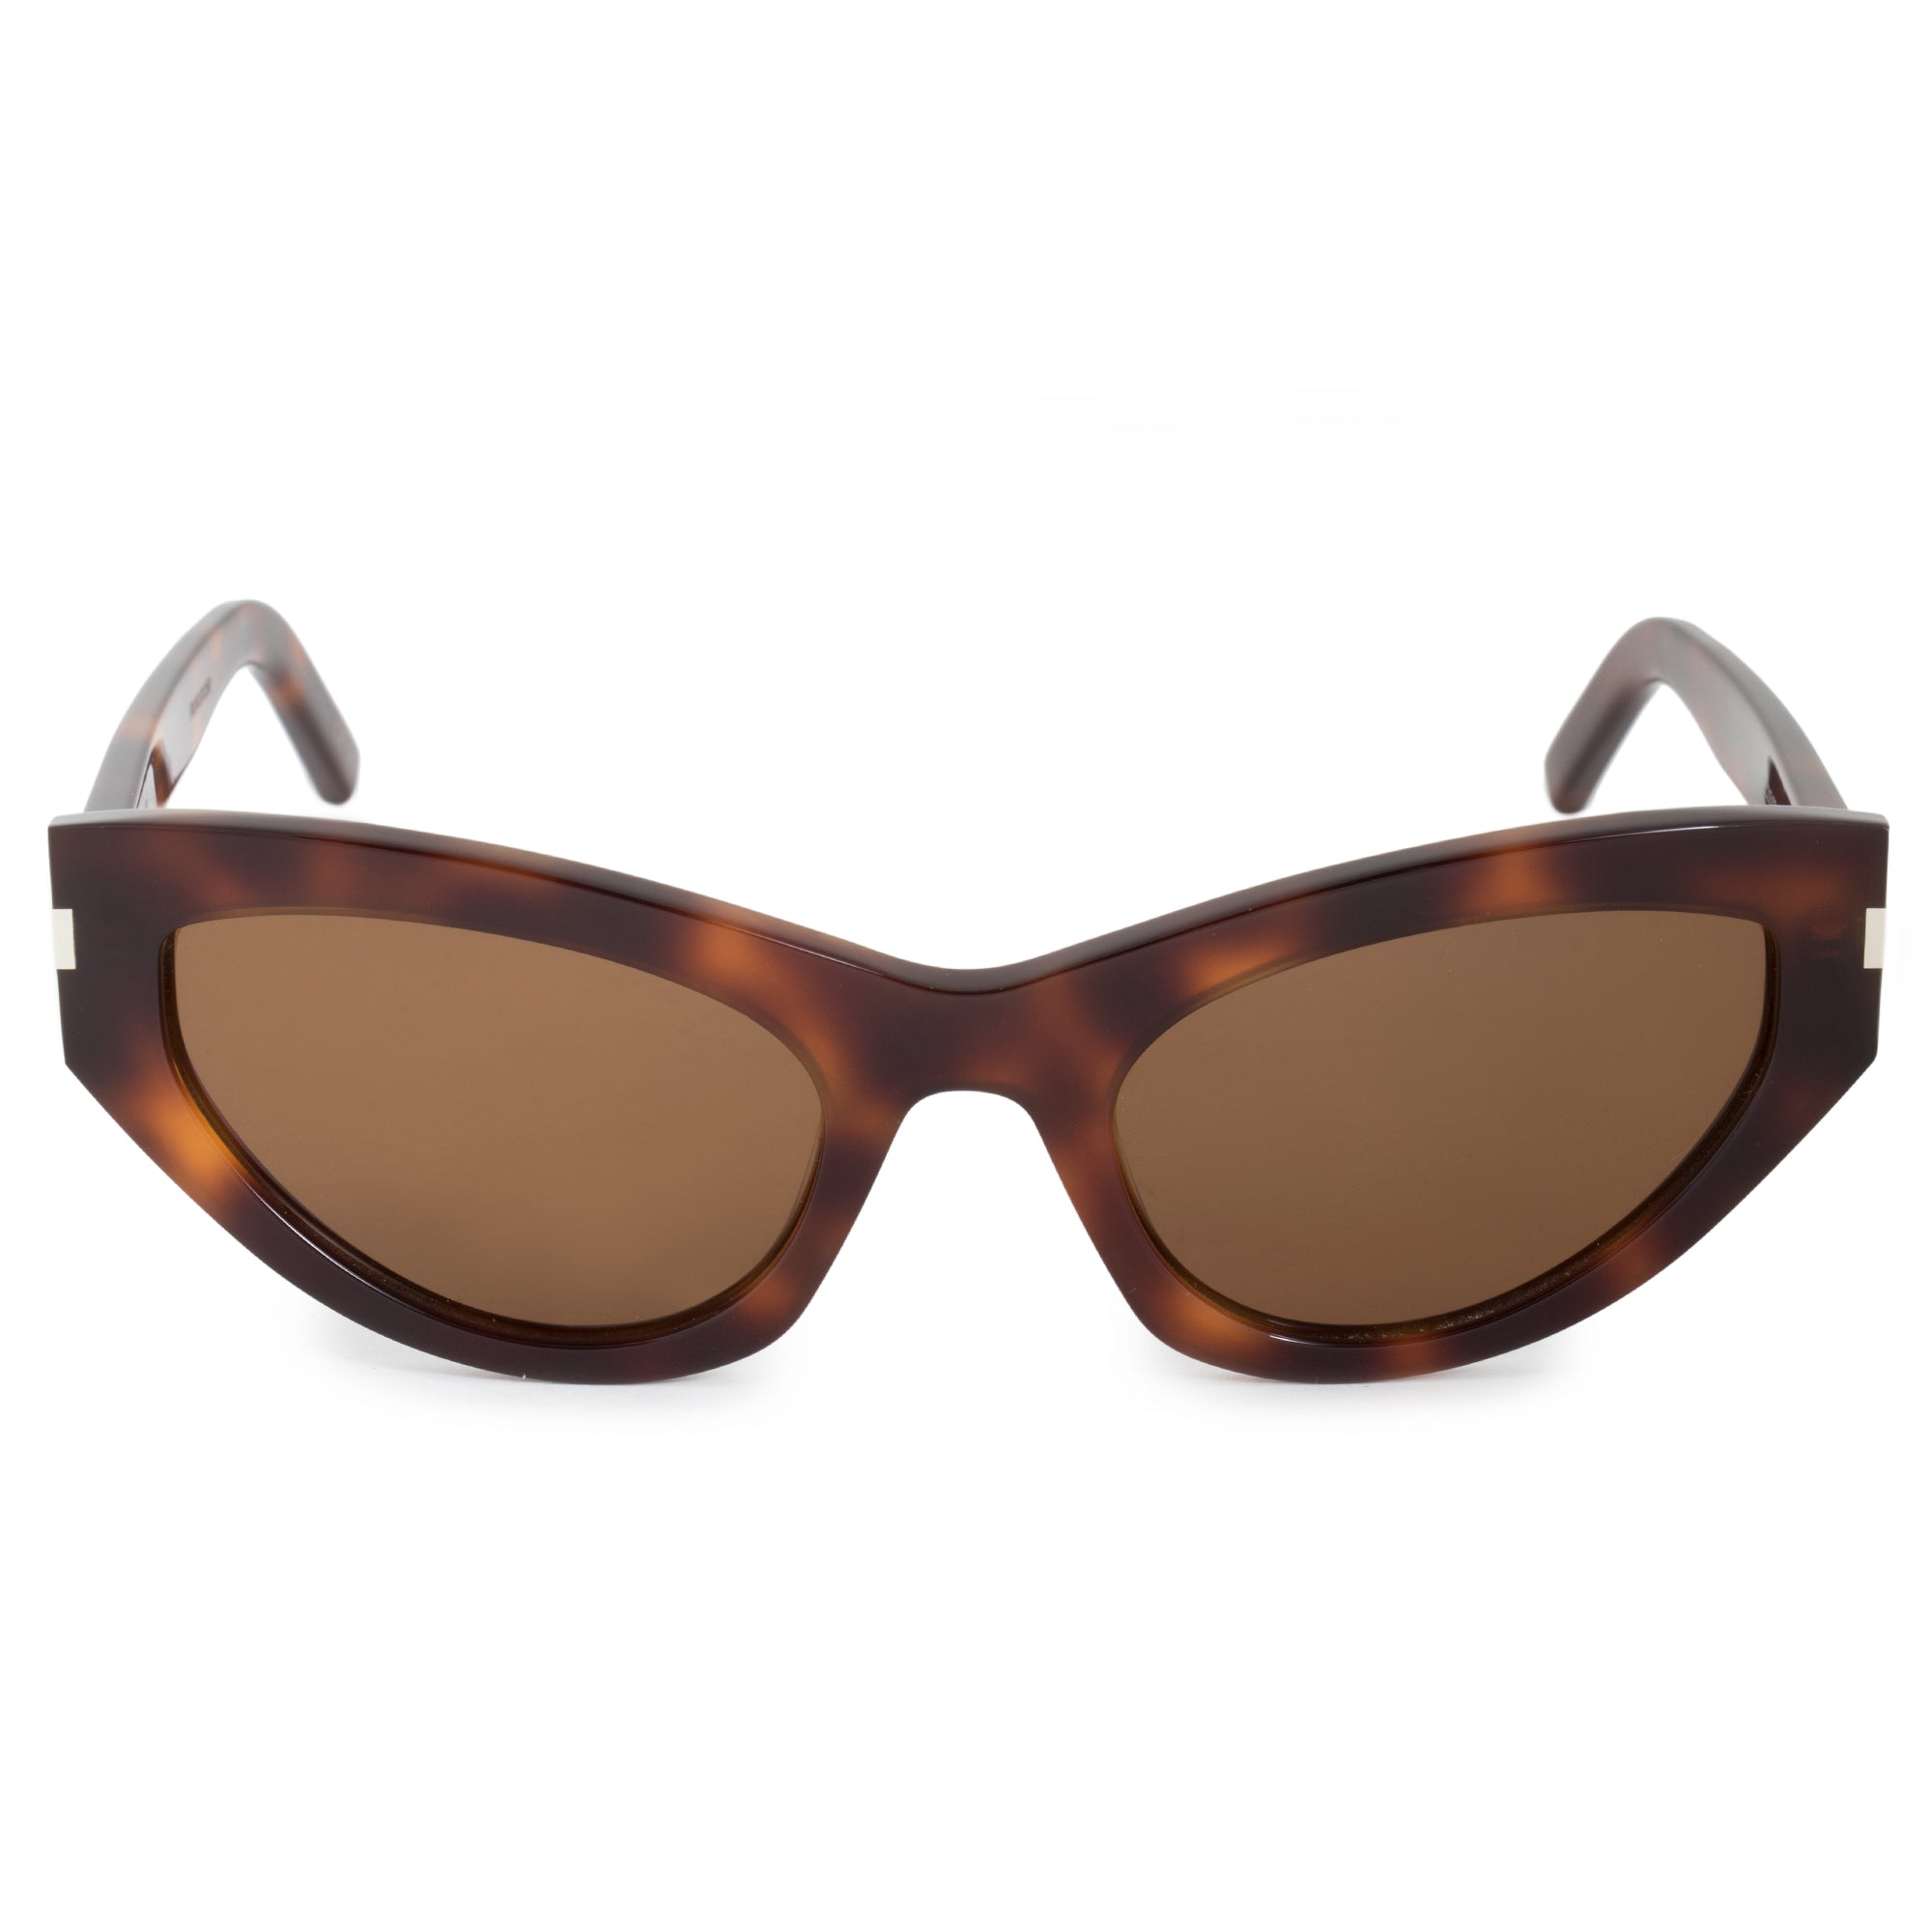 Saint Laurent Saint Laurent SL 215 GRACE 008 54 Cat Eye Sunglasses